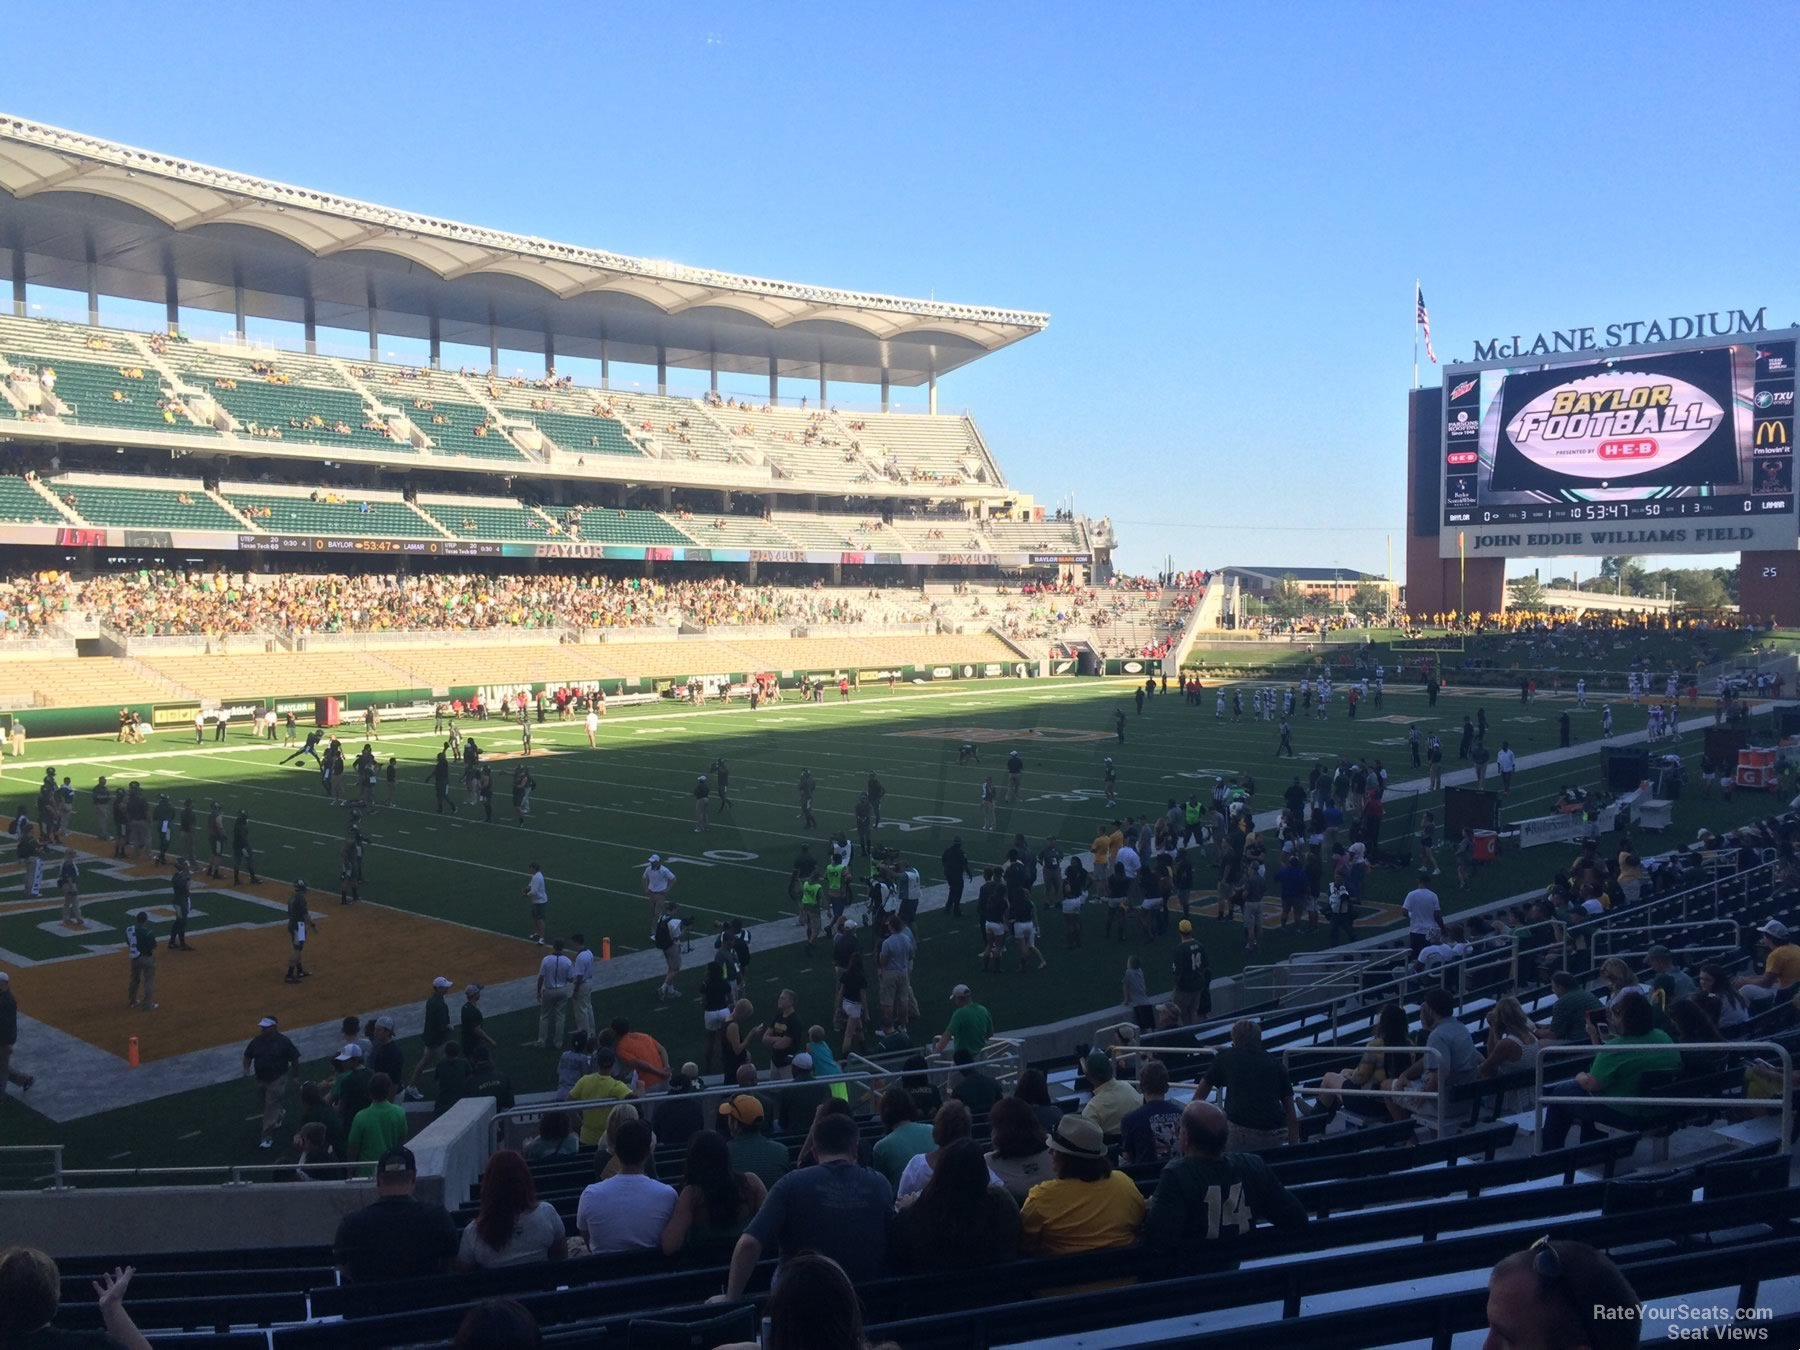 Seat View for McLane Stadium Section 111, Row 20